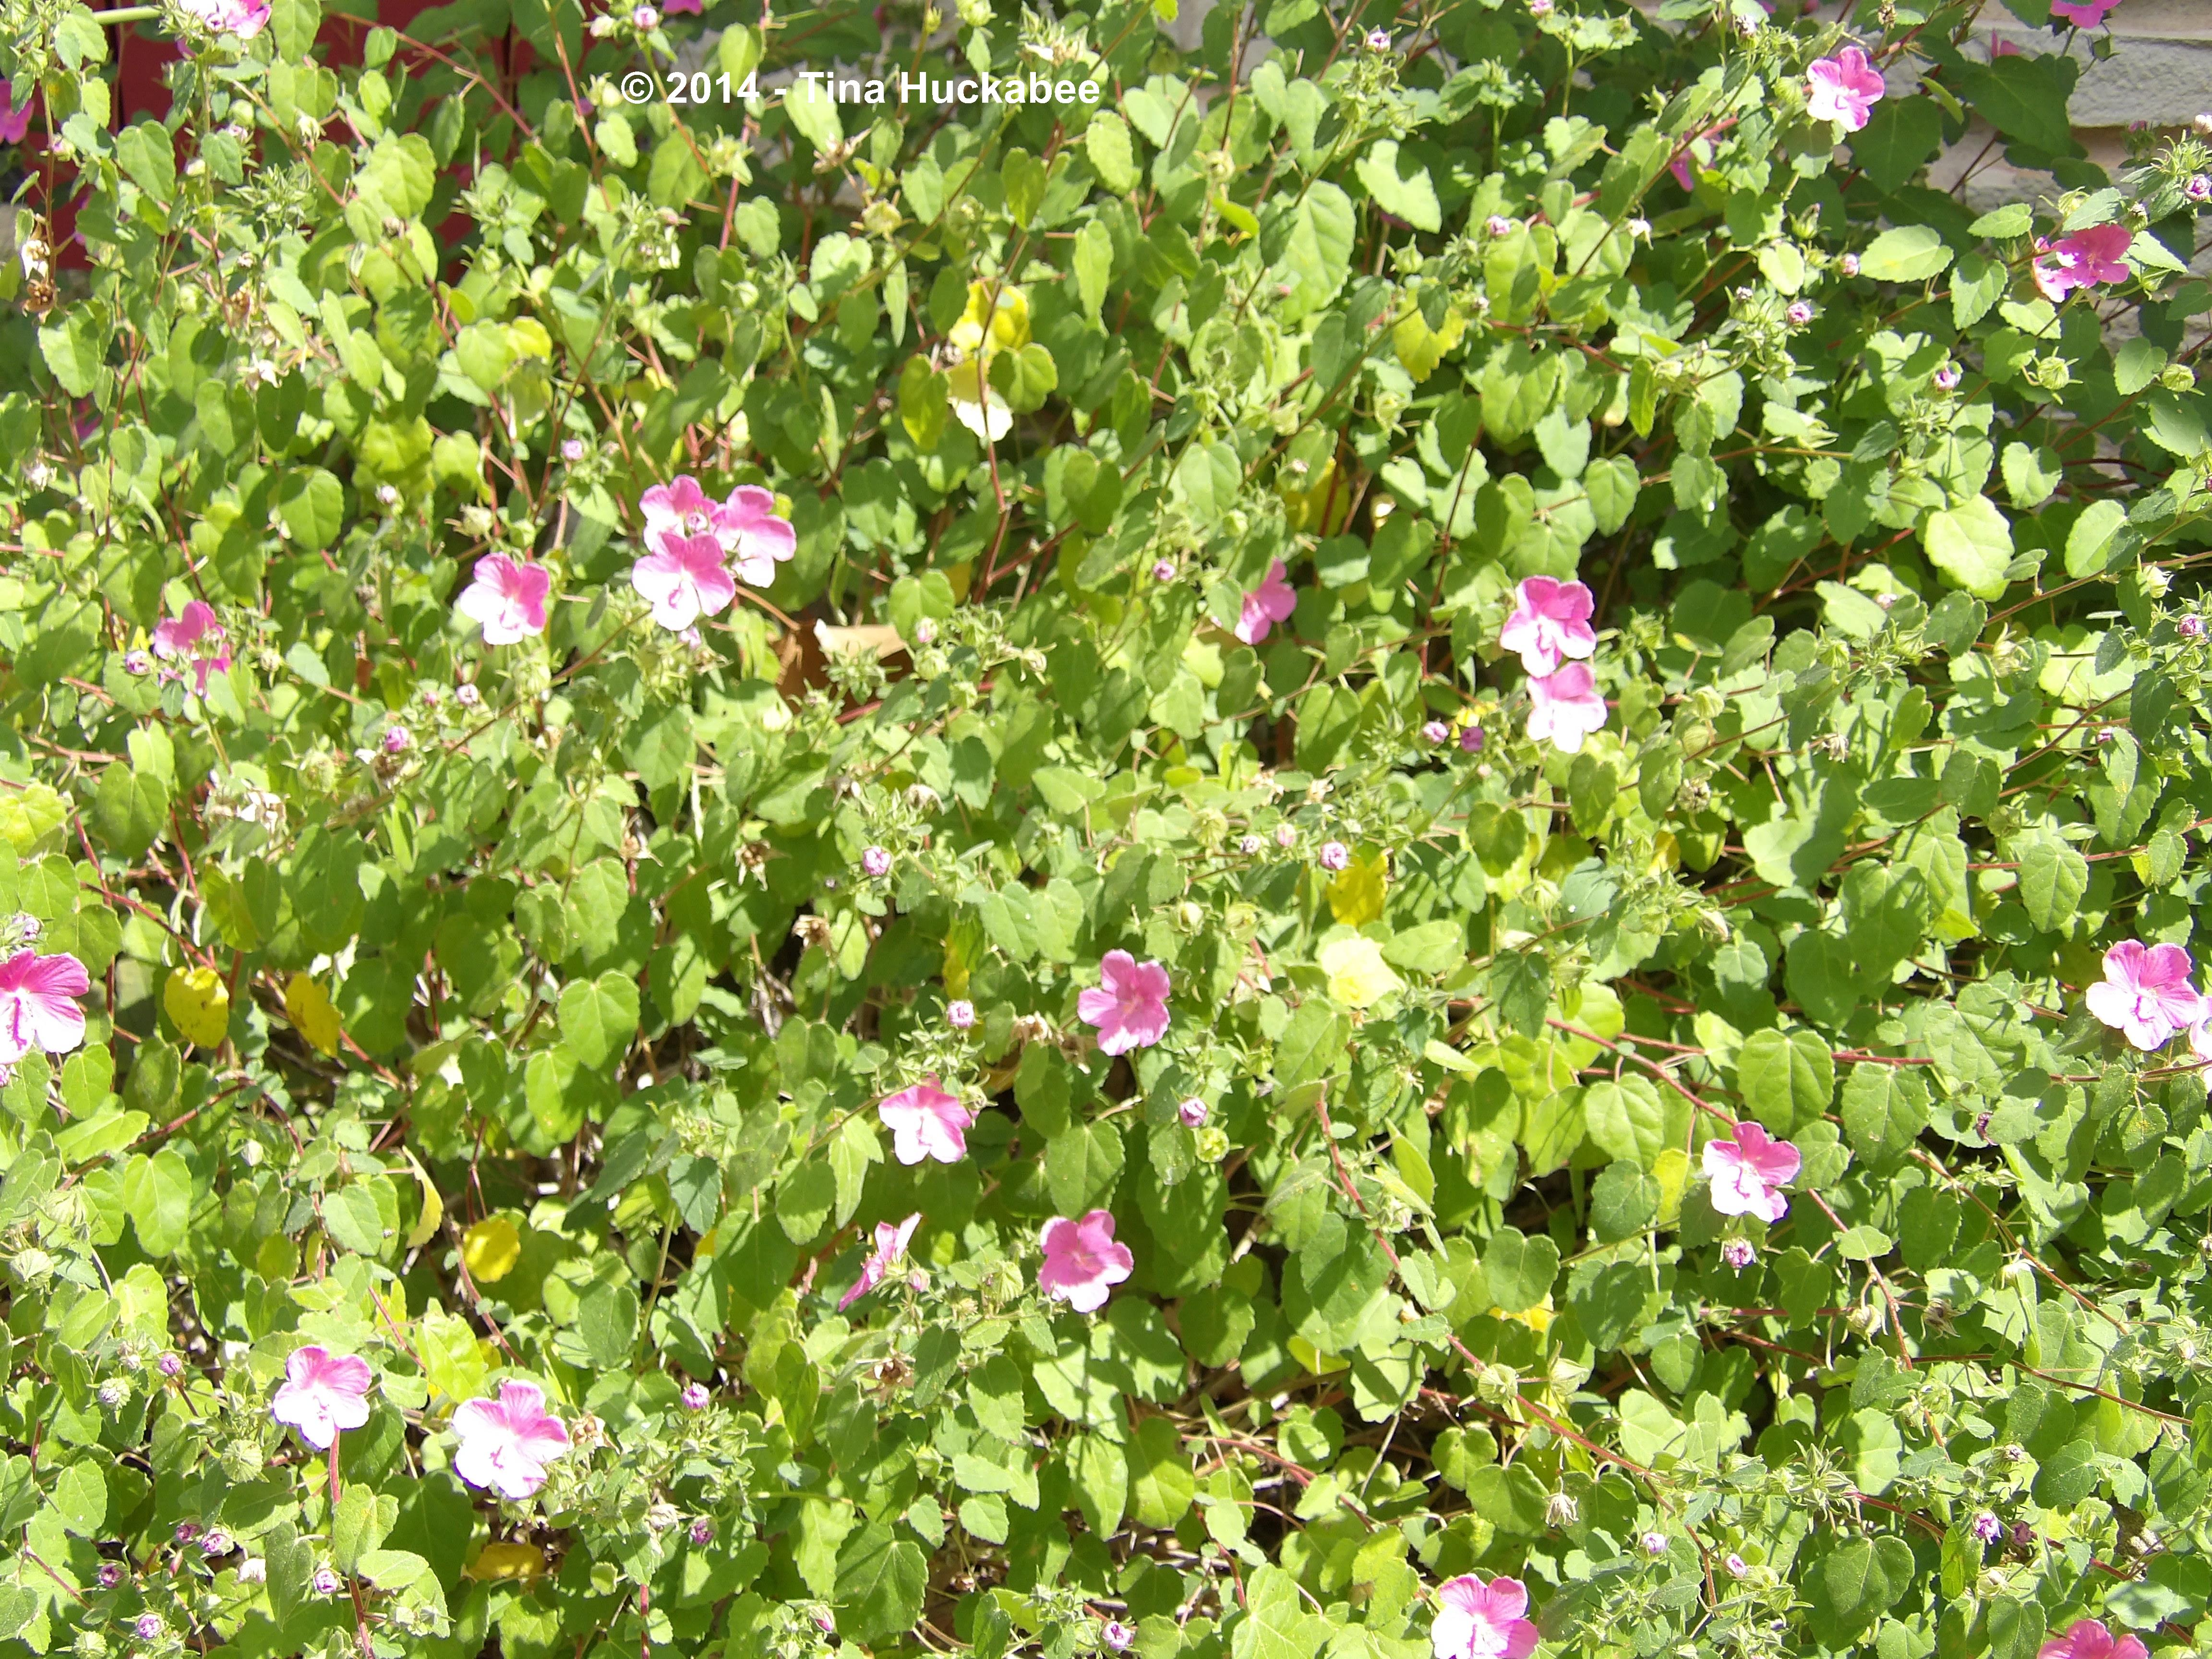 Texas native plant weekrock rose pavonia lasiopetala my gardener the pretty in pink flowers open early in the mornings and close for business by 3 or 4pm during the heat of summer the closing of those blooms is the izmirmasajfo